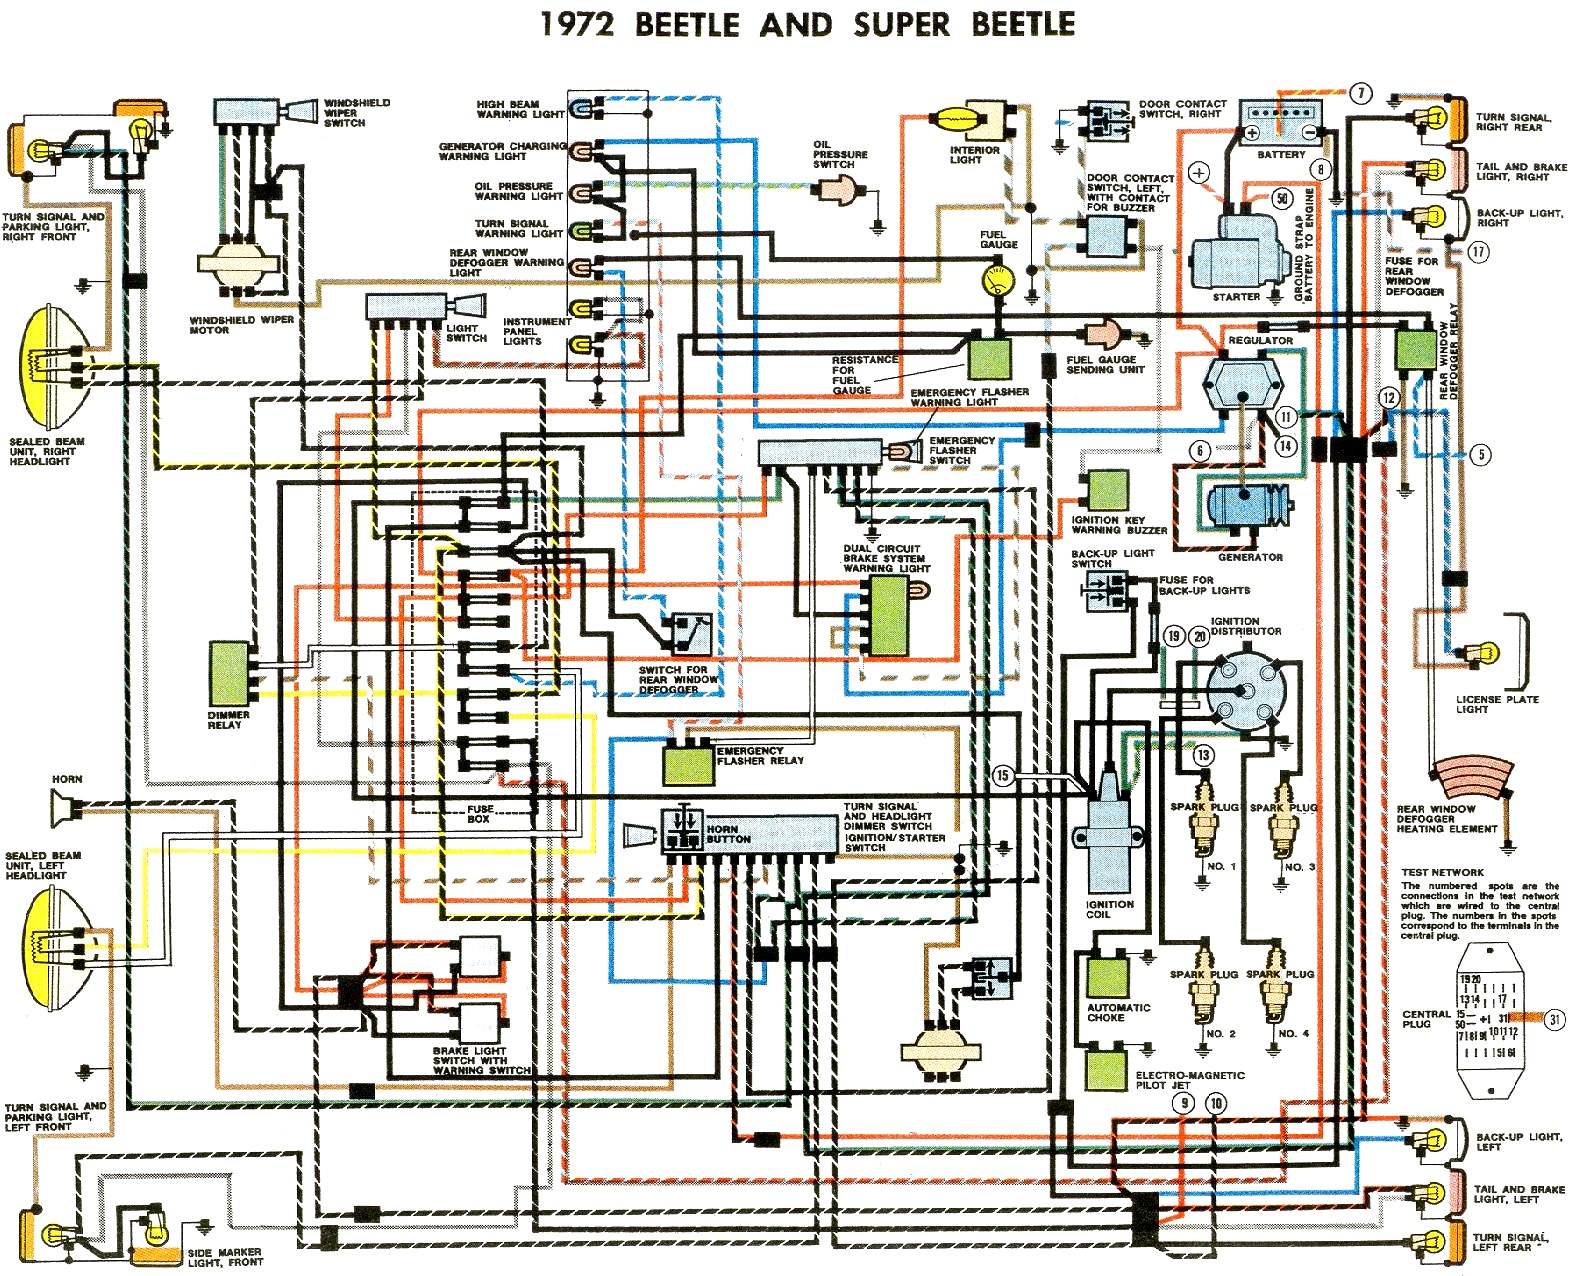 bug_72 vw mk1 wiring diagram 56 vw bug wiring diagram \u2022 wiring diagrams 1972 volkswagen super beetle wiring harness at mifinder.co